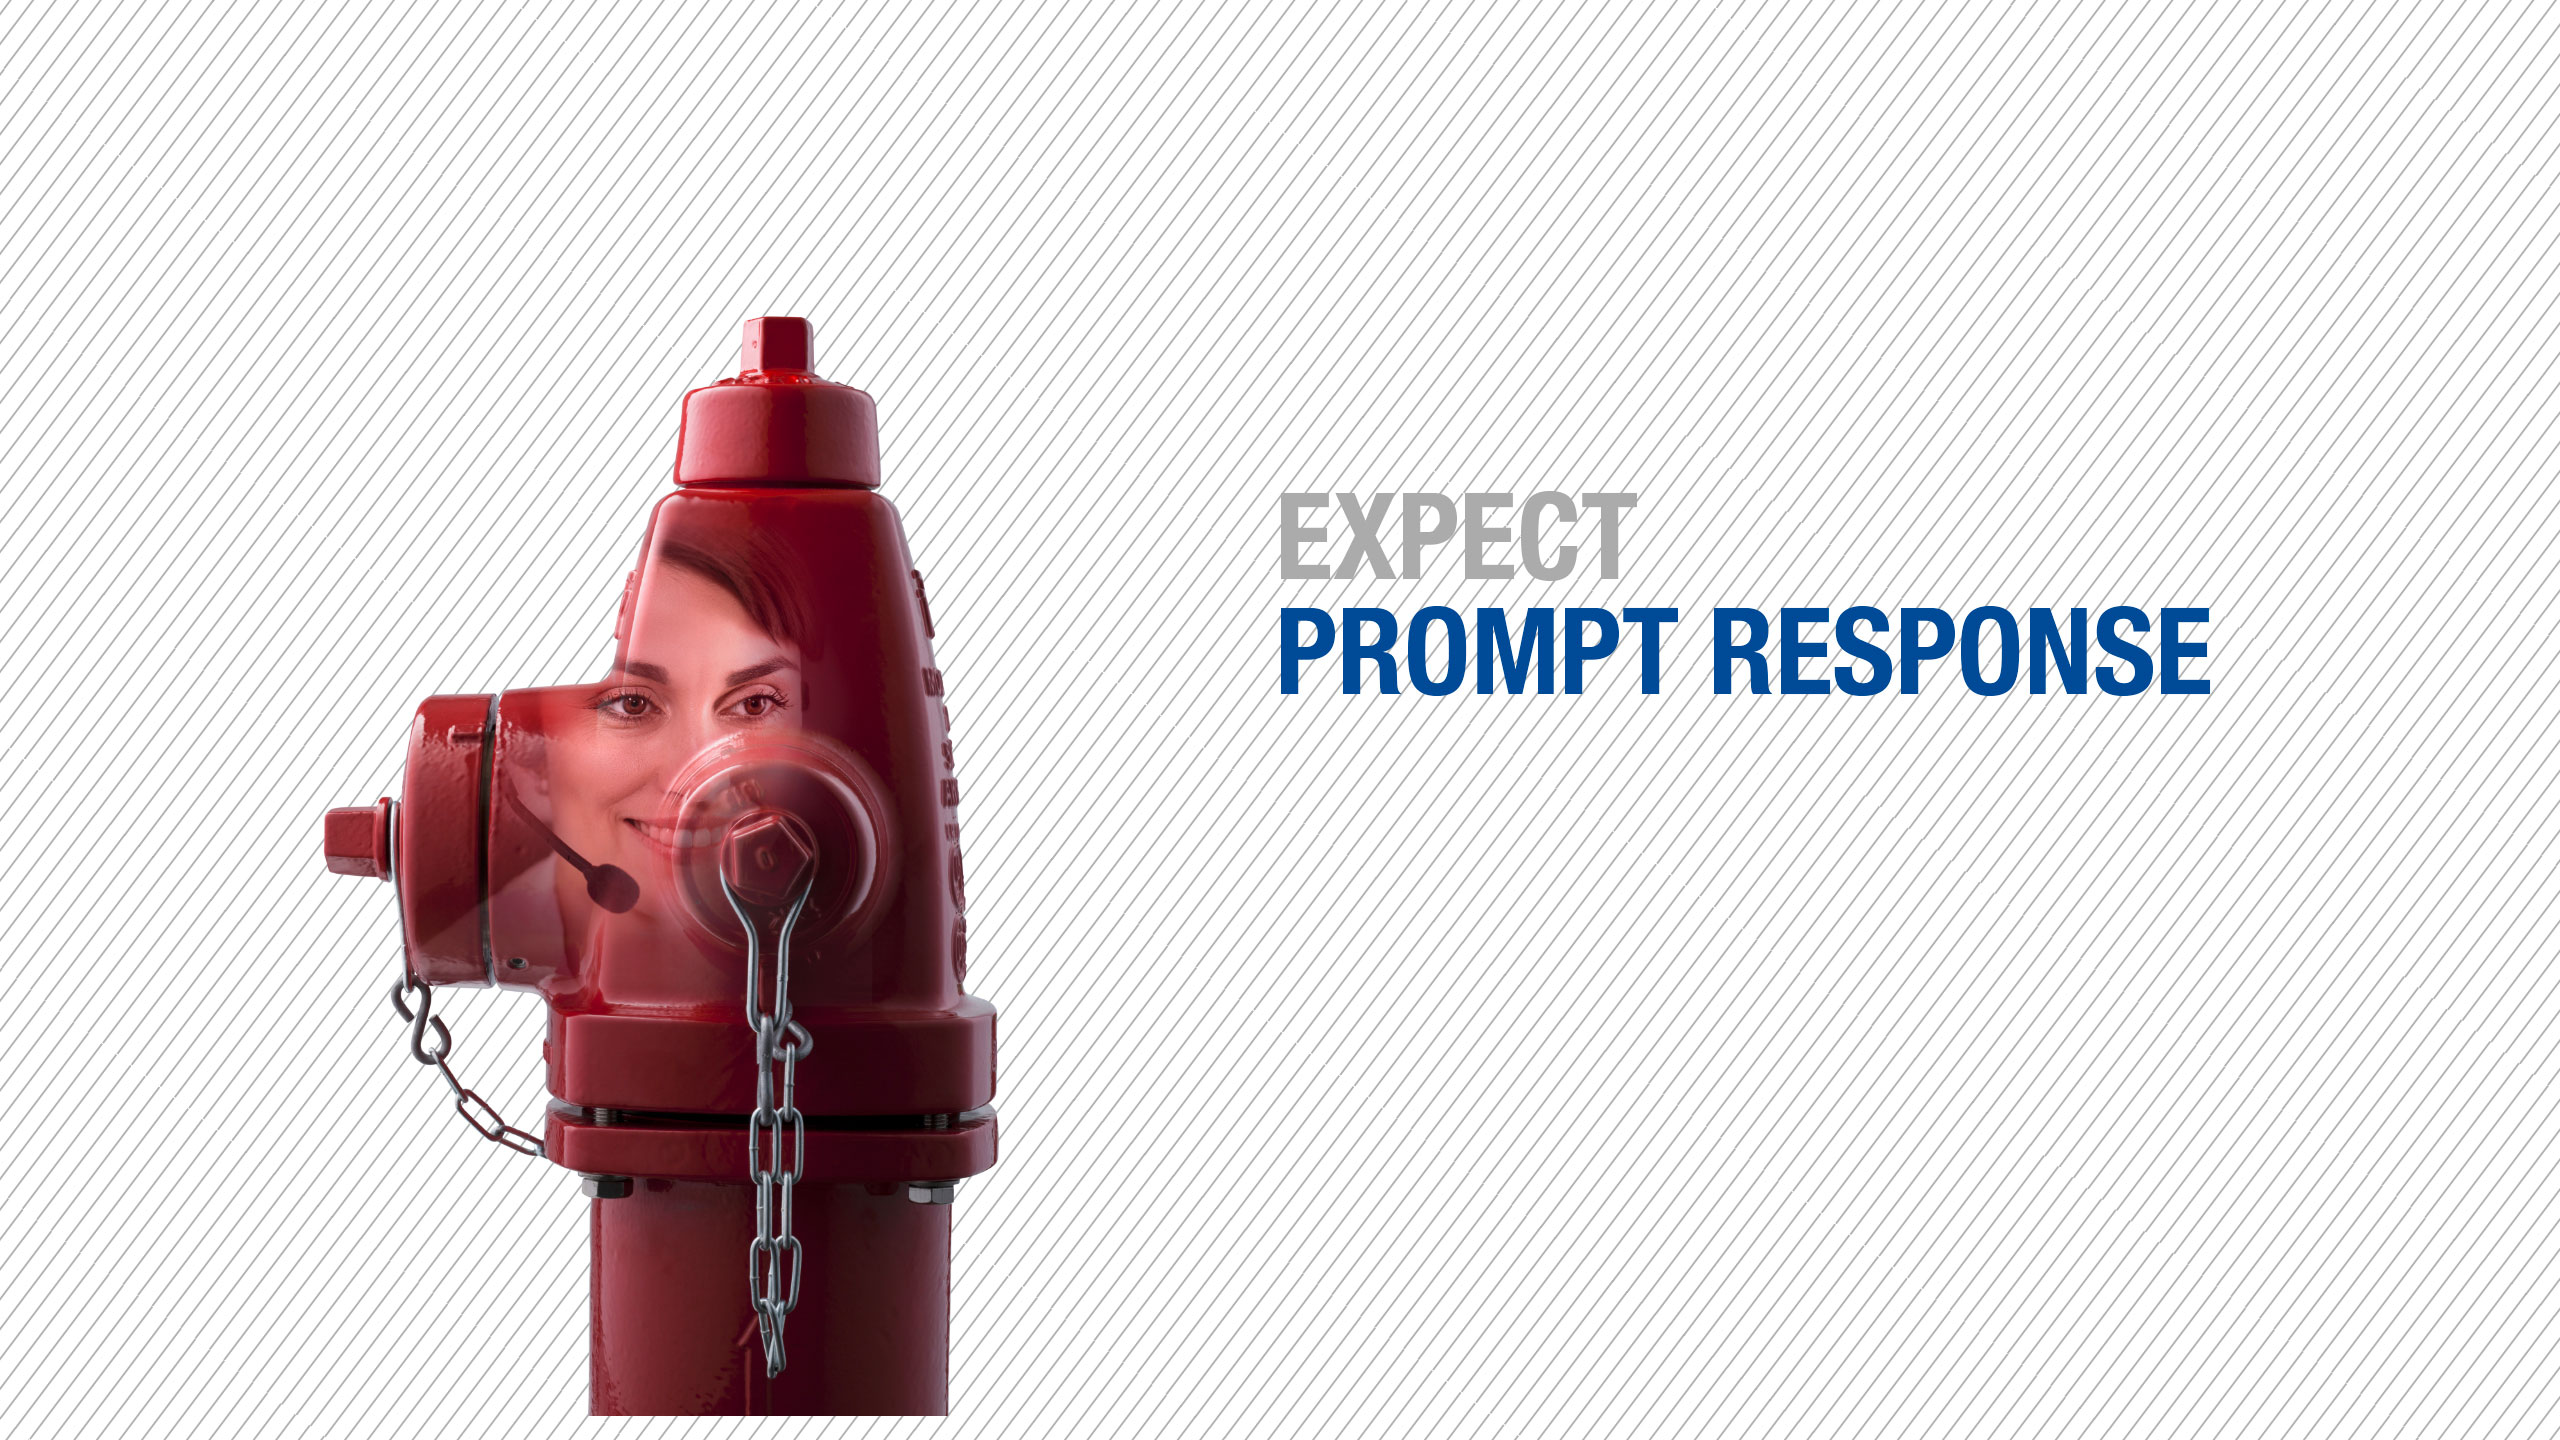 Expect prompt response from AVK